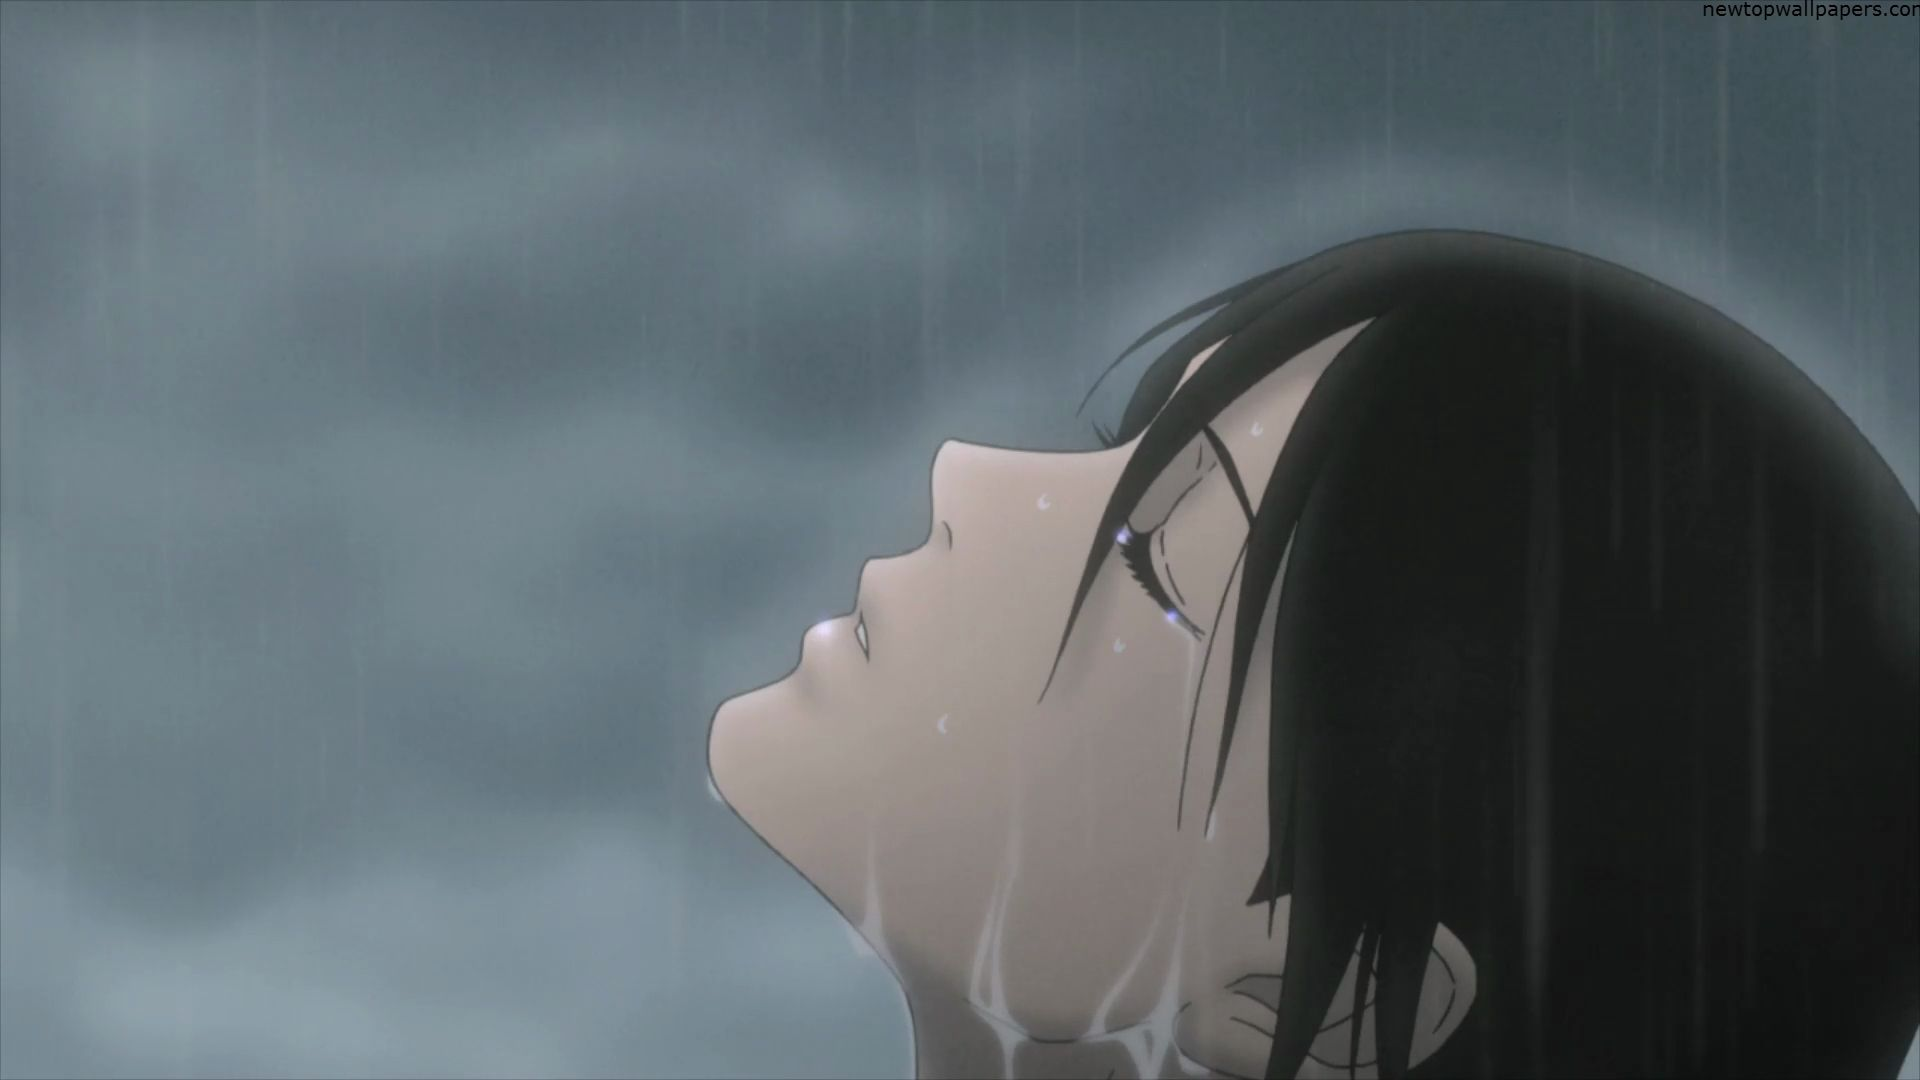 Anime Boy Alone  Alone Anime Girl In Rain Free Download -2744